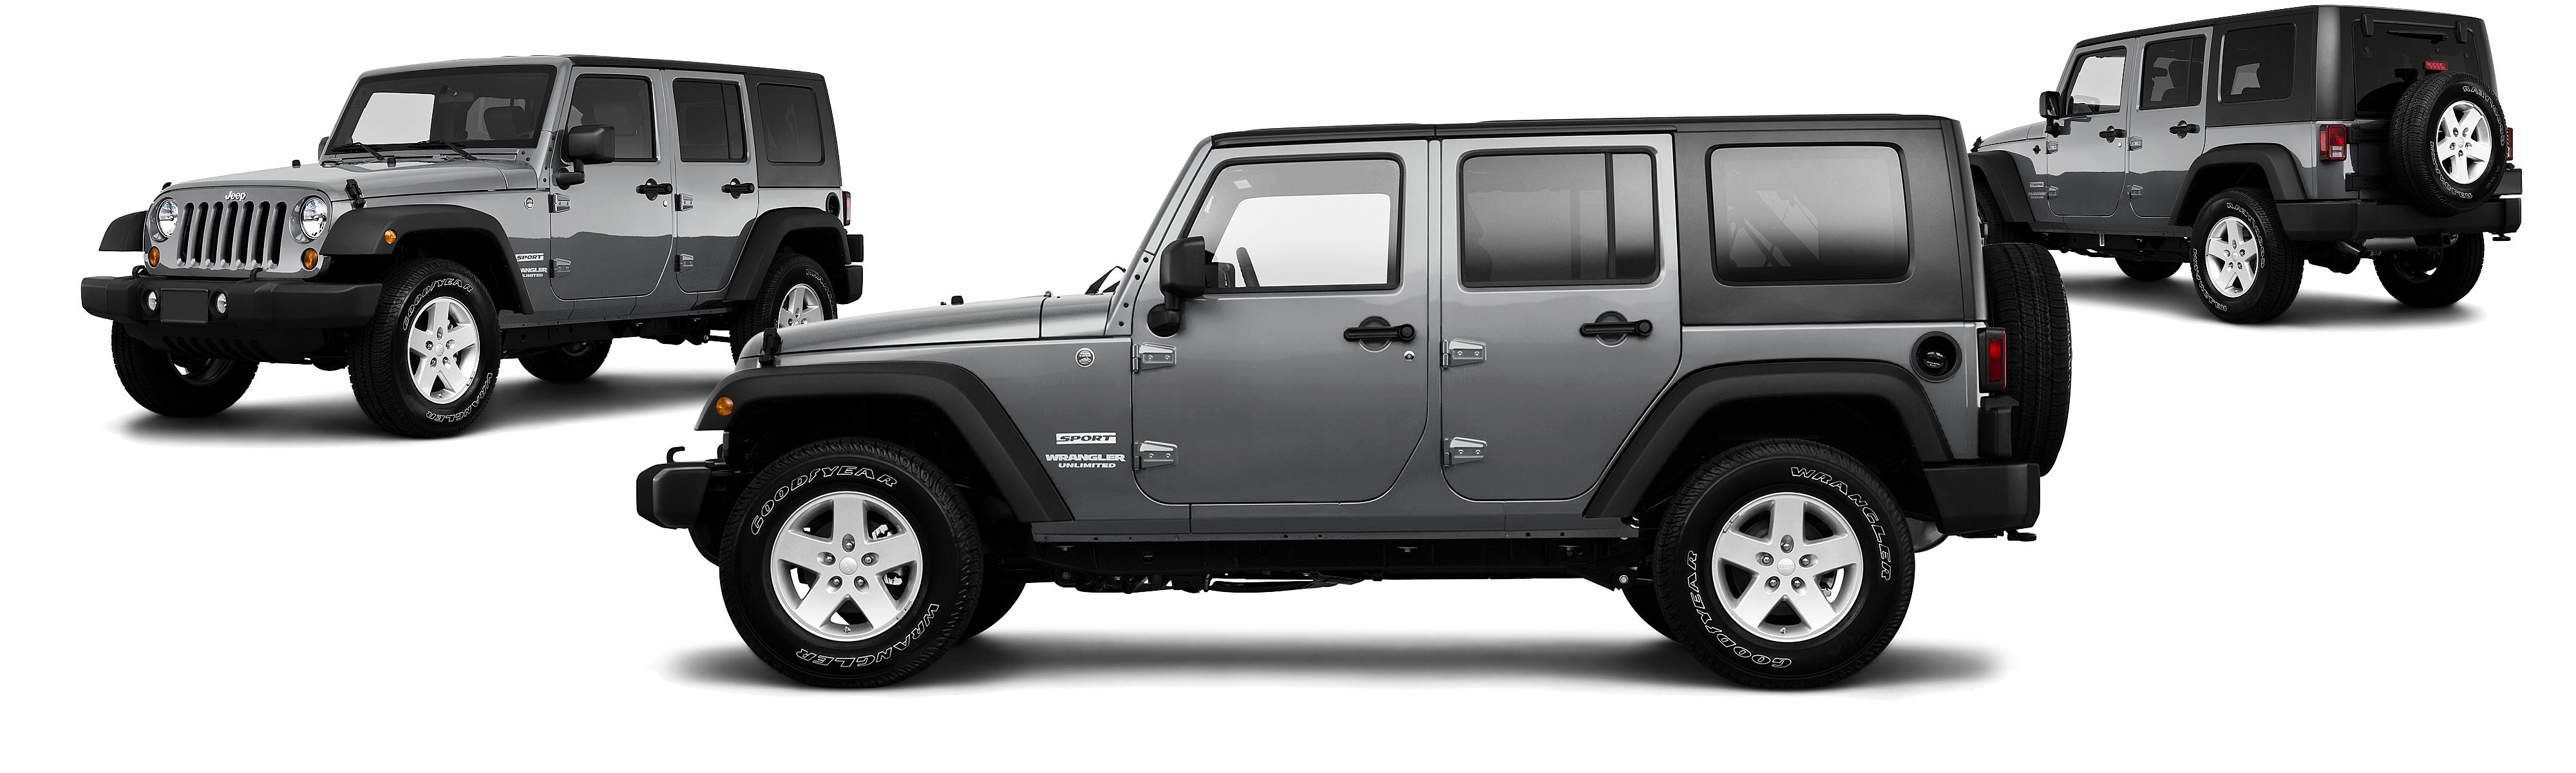 fine wrangler suv used fl florida stock palm sahara jeep sale cars in west carsforsale for unlimited